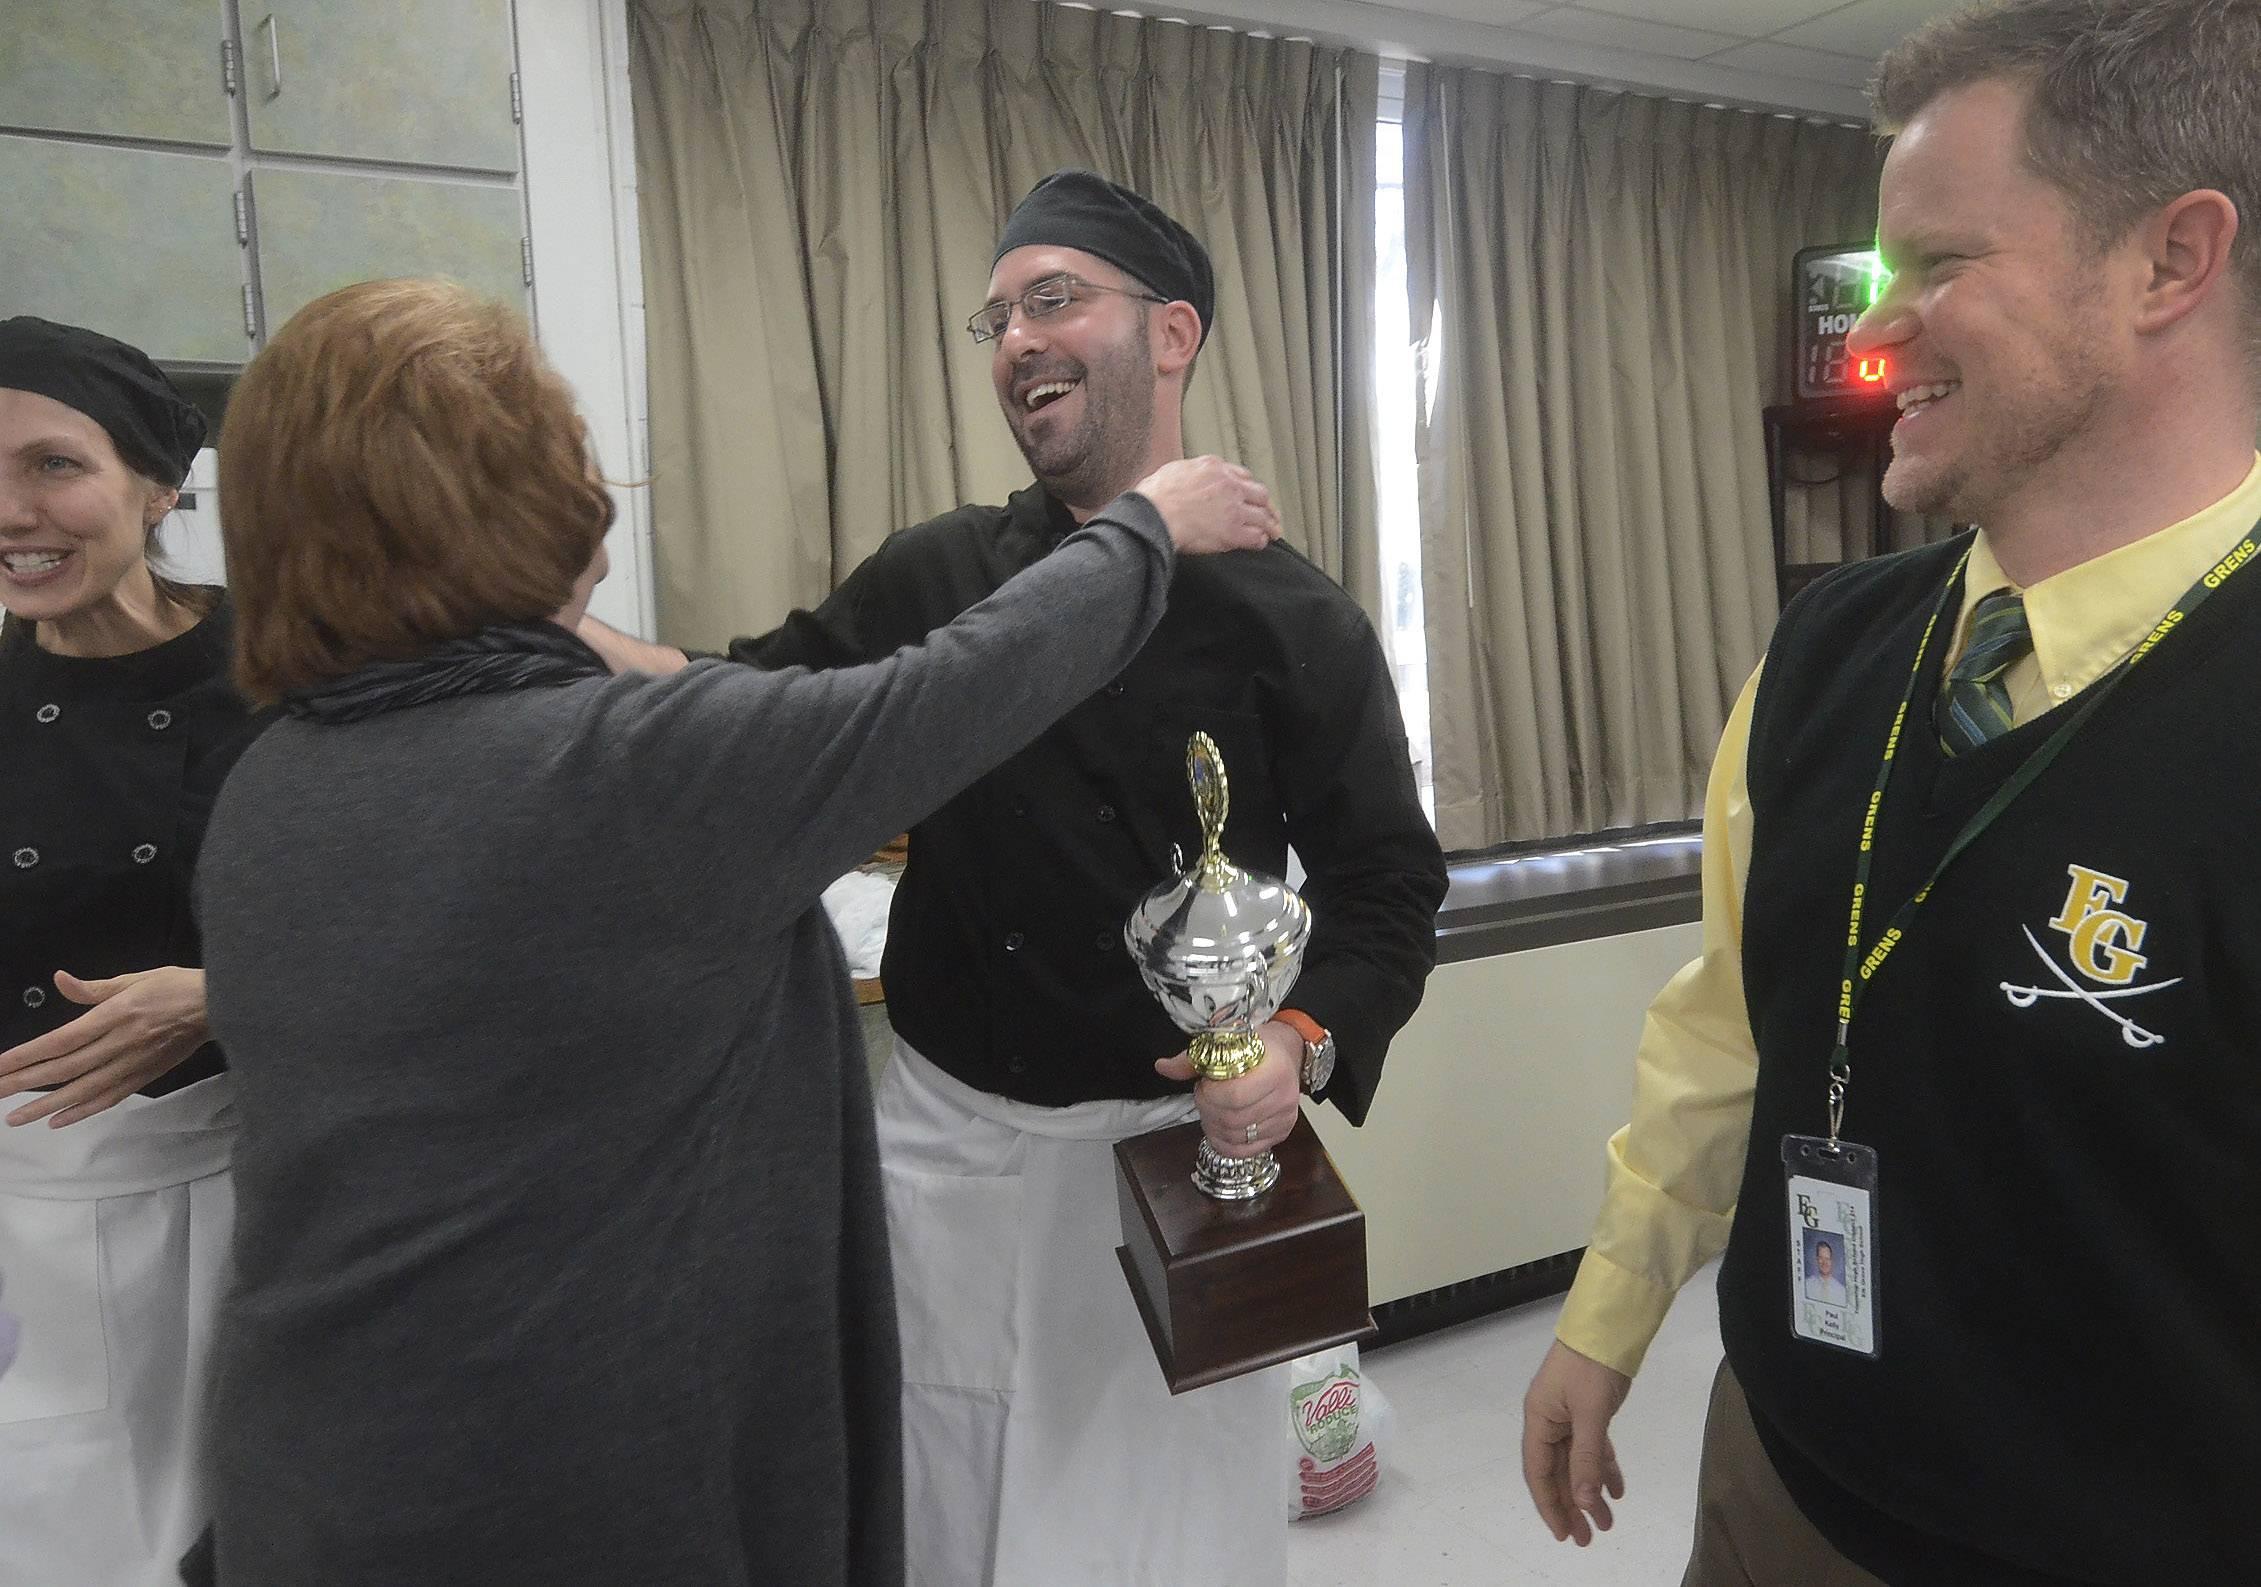 Elk Grove High School counselor Scott Deutsch is congratulated by two of the judges, cafeteria Manager Kathy Benn, left and Principal Paul Kelly, after his team won Elk Grove High School's ProStart vs. Faculty Cook-off.